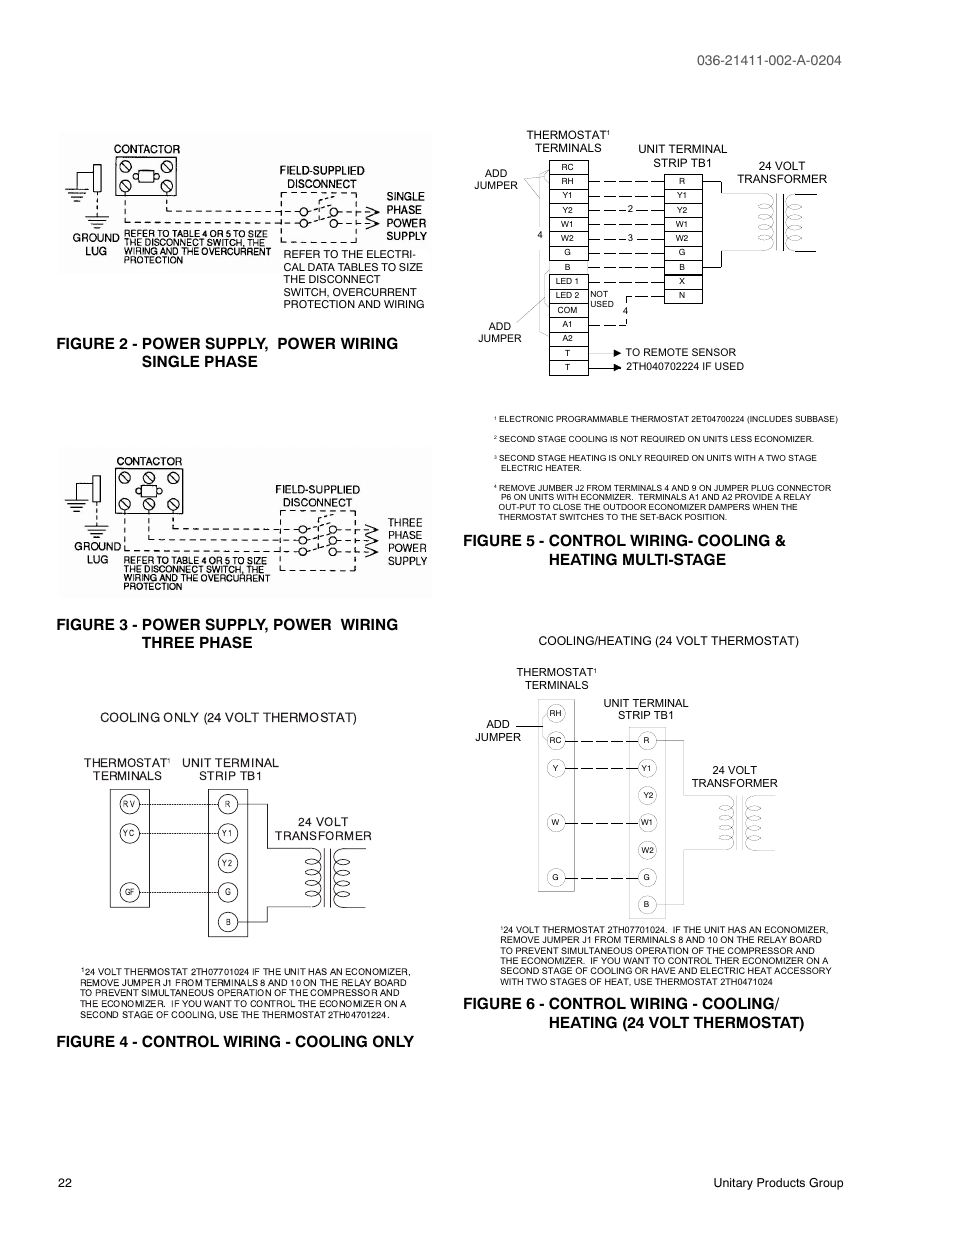 Figure 2 Power Supply Wiring Single Phase 3 Thermostat Heat And Cool Transformers Three 4 Control Cooling Only York